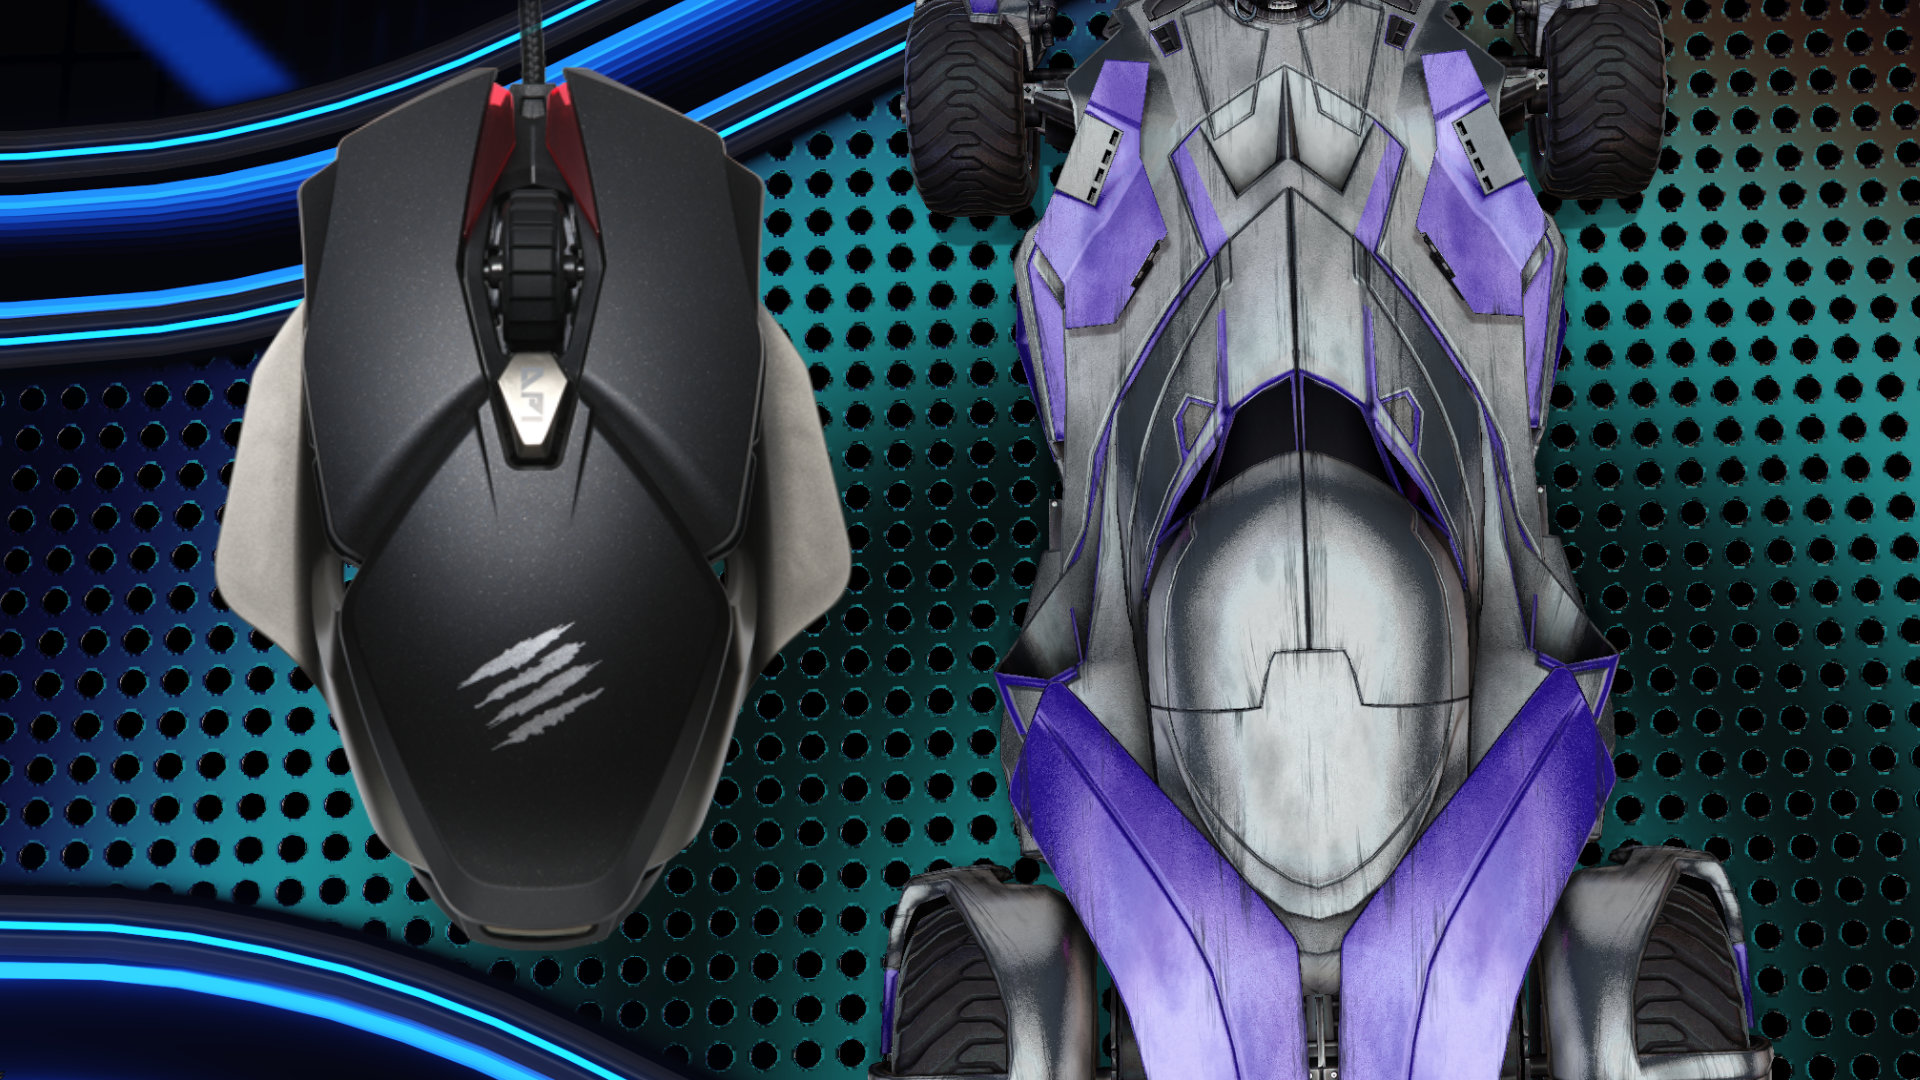 Mad Catz' new B.A.T. 6+ gaming mouse is less Transformers and more Batmobile